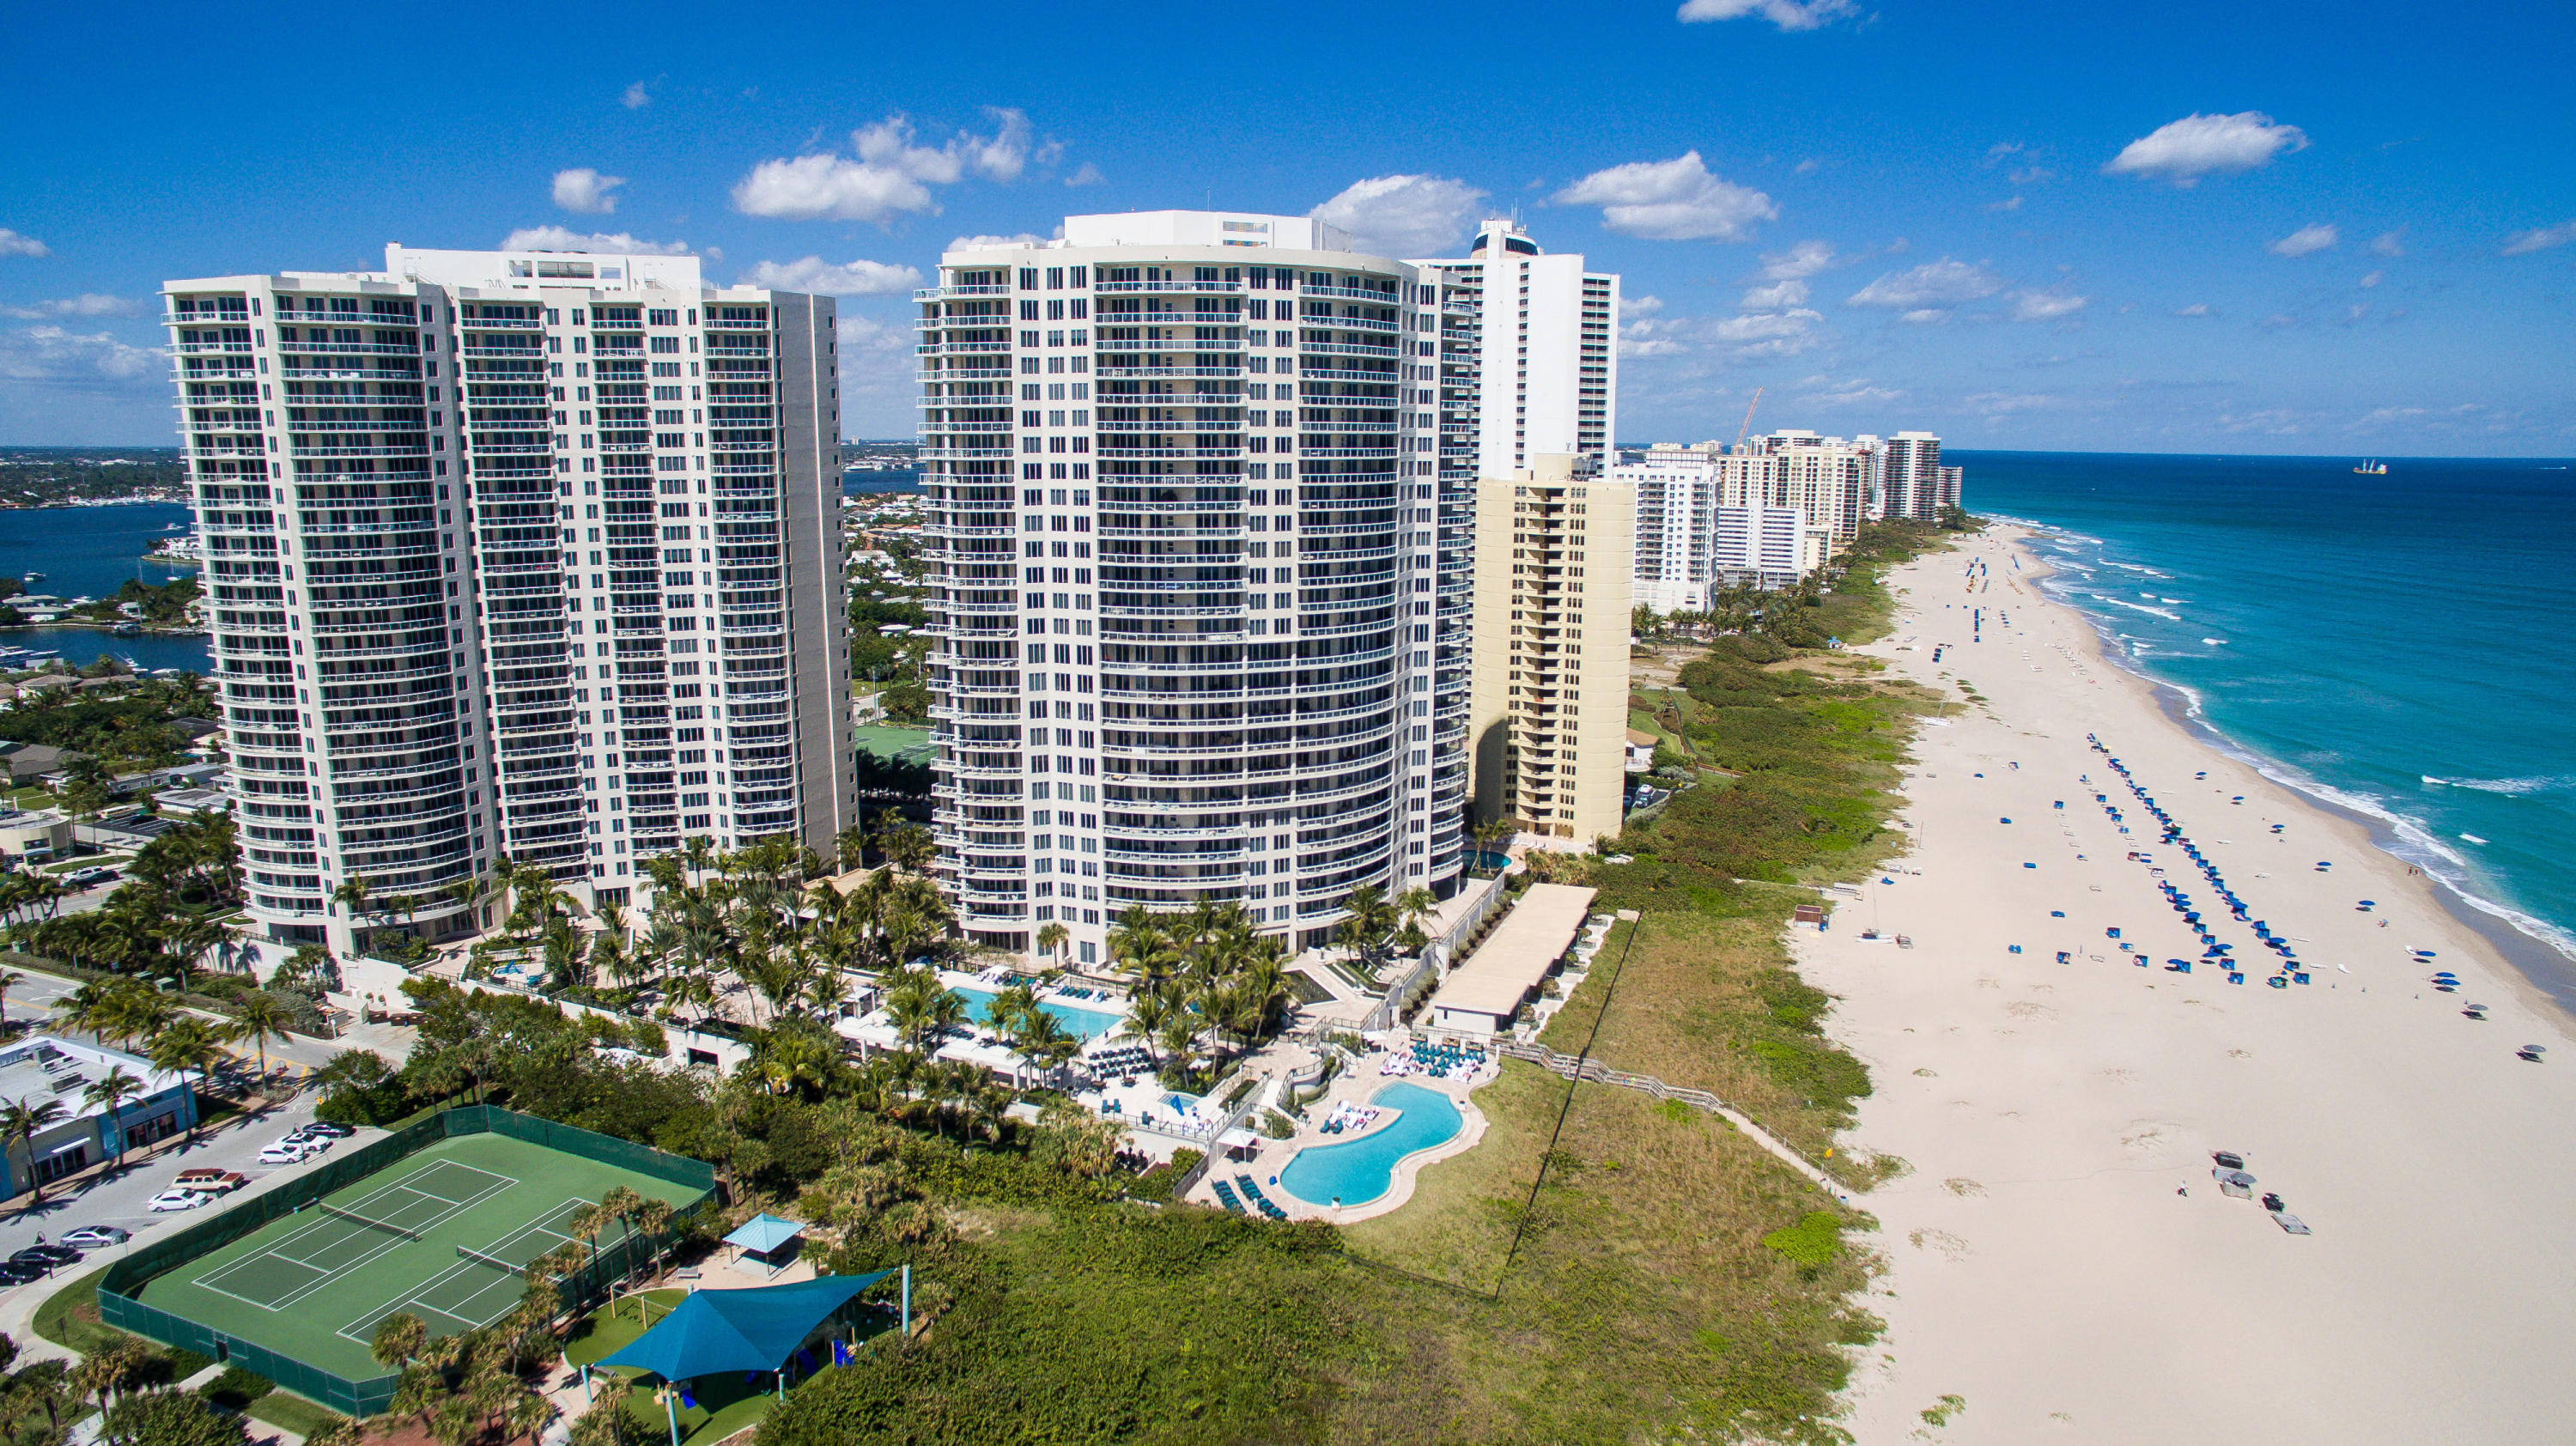 New Home for sale at 2700 Ocean  in Singer Island